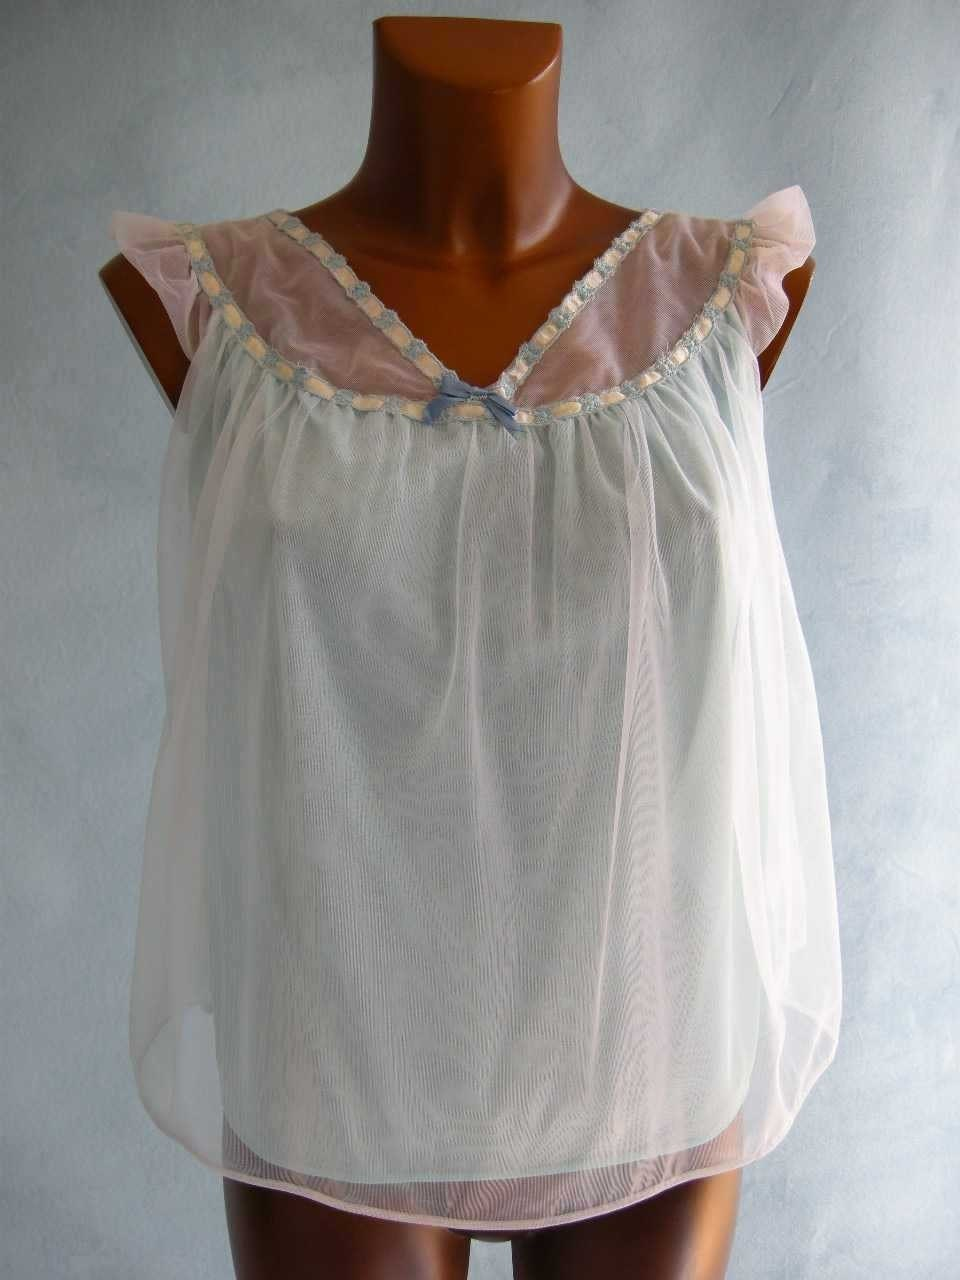 ULTRA SHORT Vintage 50s Blue Chiffon Babydoll S M by empressjade on Etsy